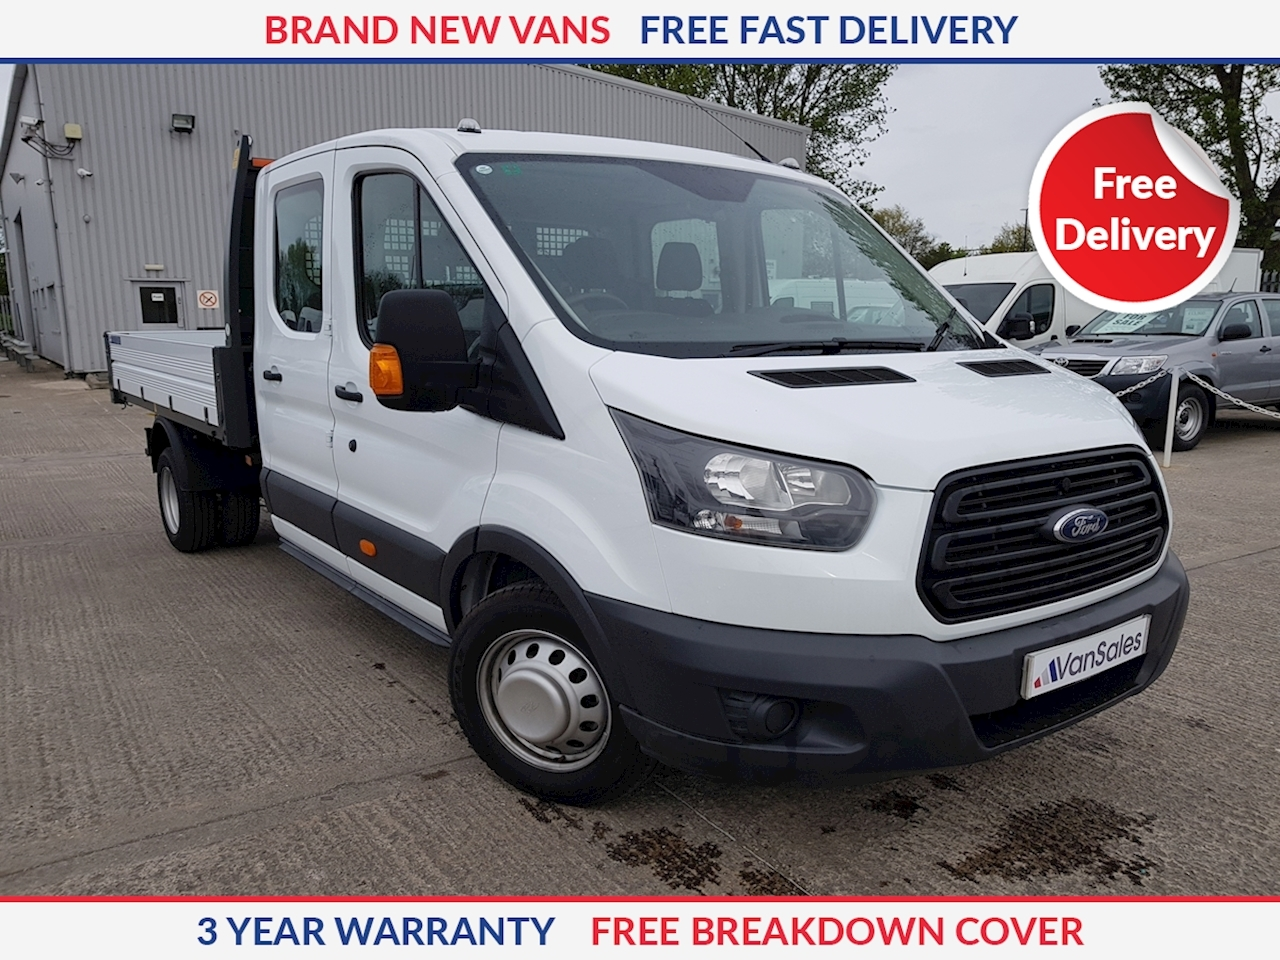 Ford Transit 350 L3 2.0 TDCI Double Cab Tipper 130ps